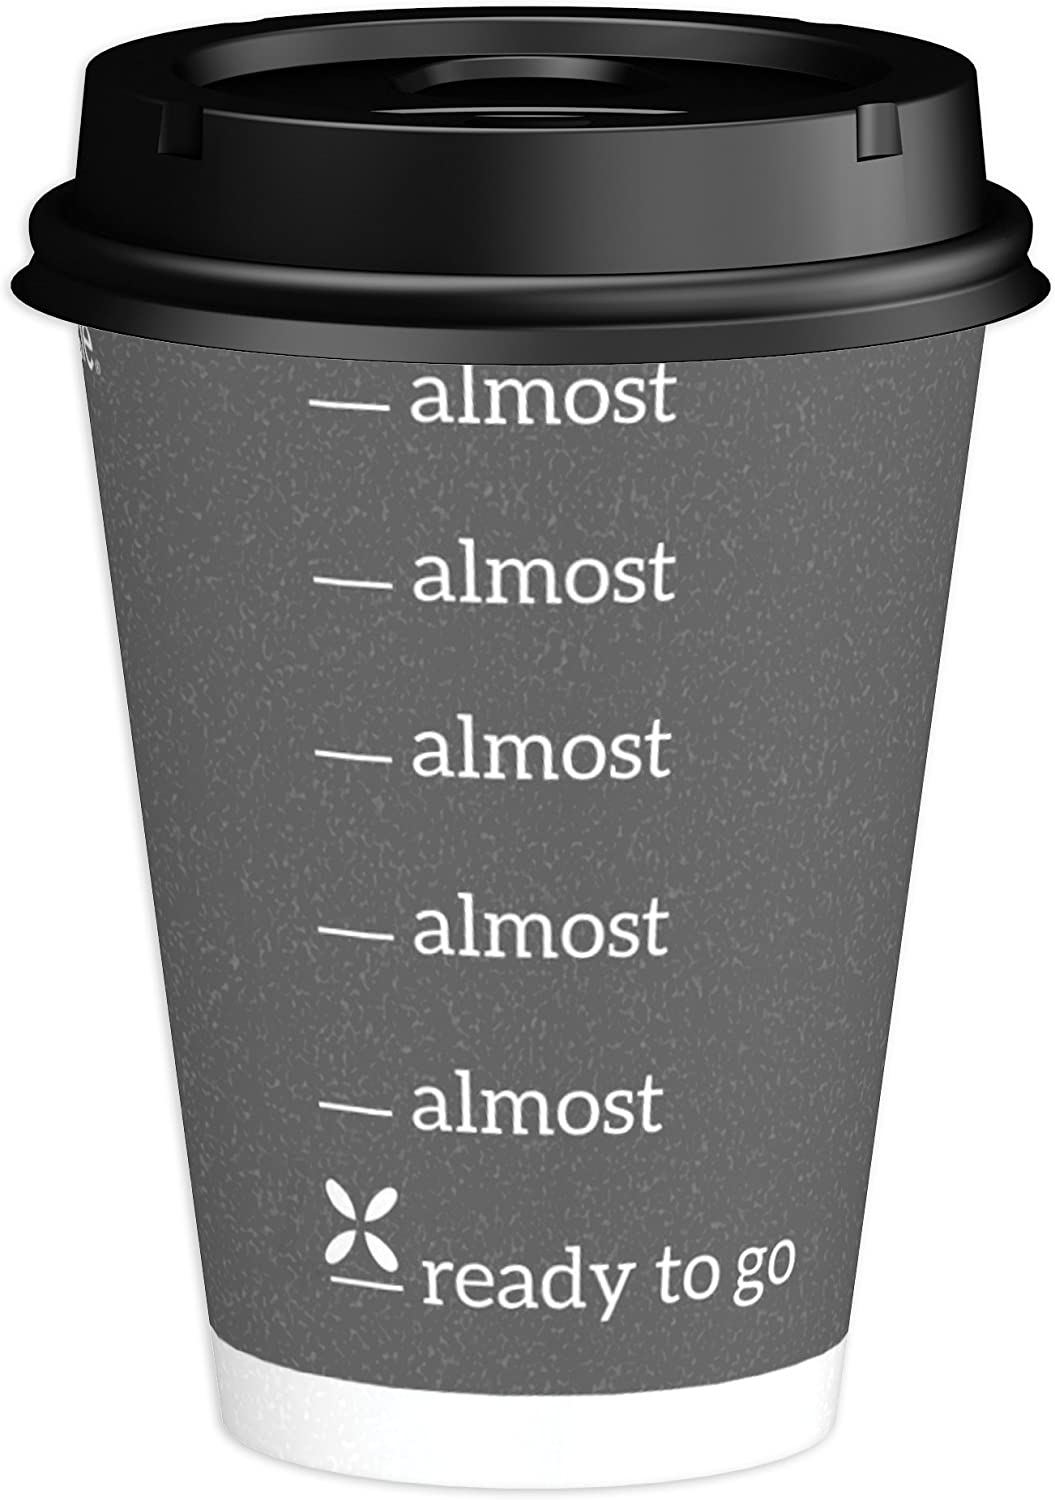 Dixie To Go Disposable Paper Cups and Lids, 14 Count, 12 Ounce Coffee Cups; Designs May Vary Pack of 2